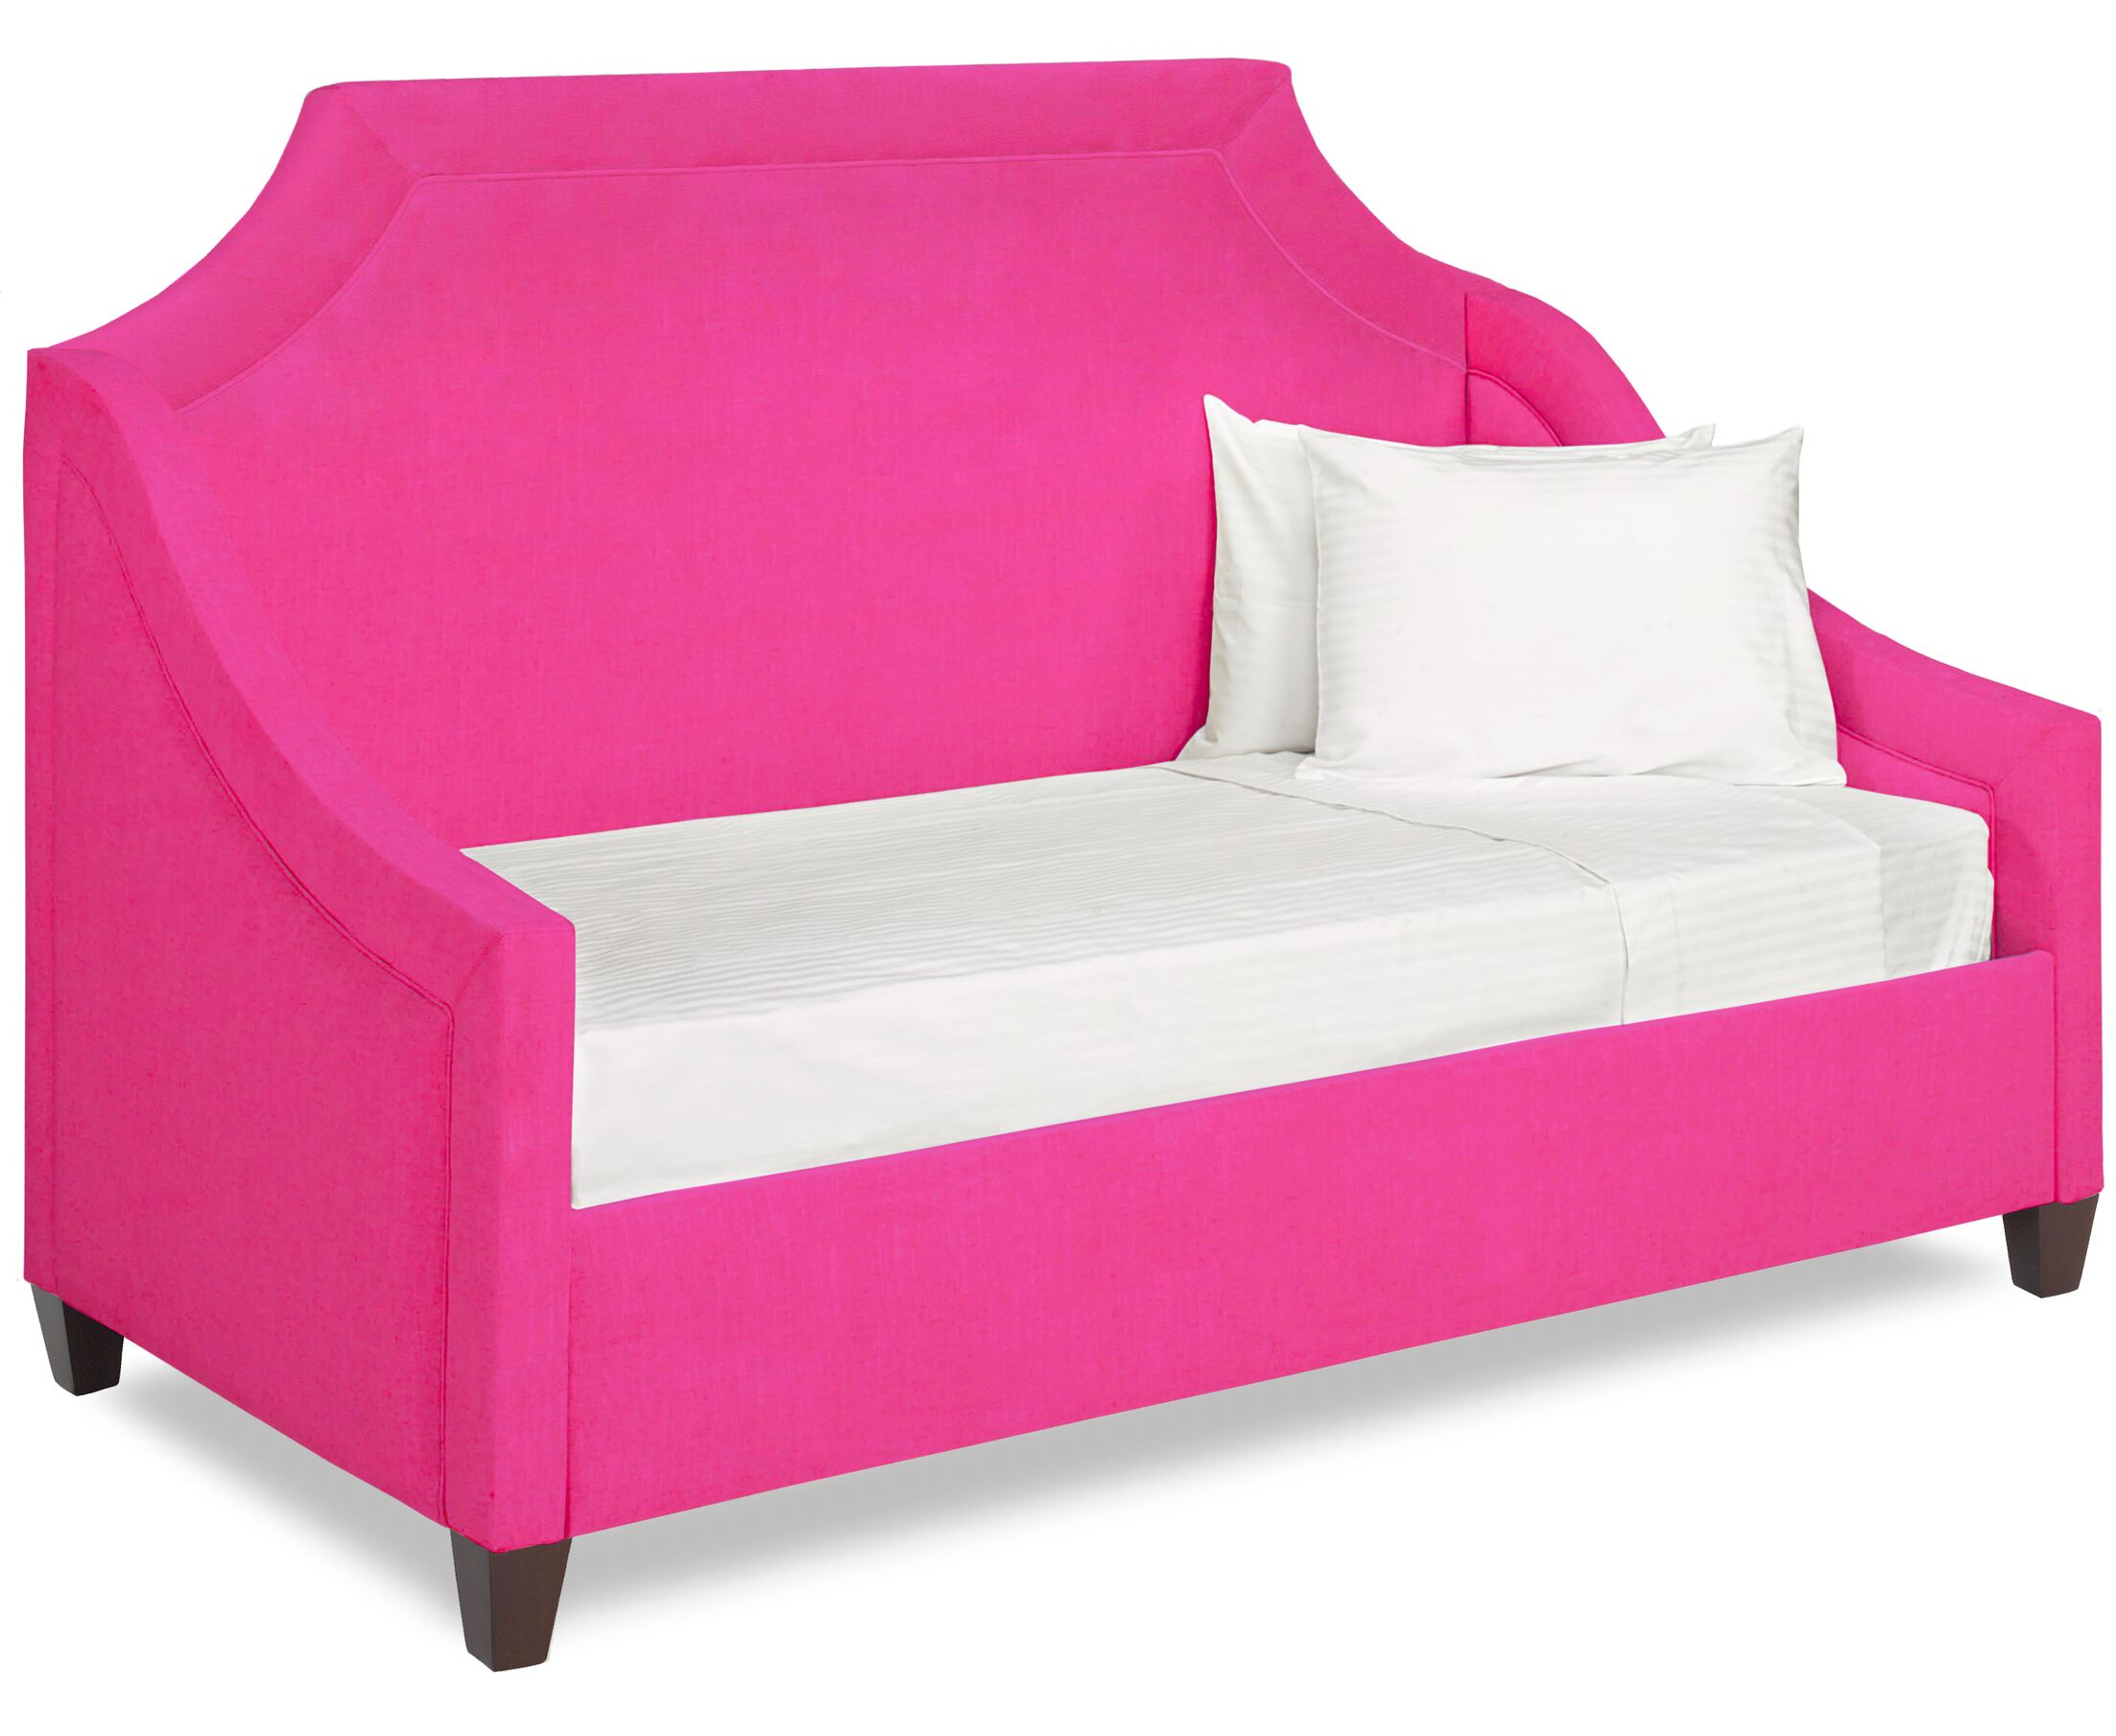 Dreamtime Daybed with Mattress Color: Fuchsia, Size: Twin XL